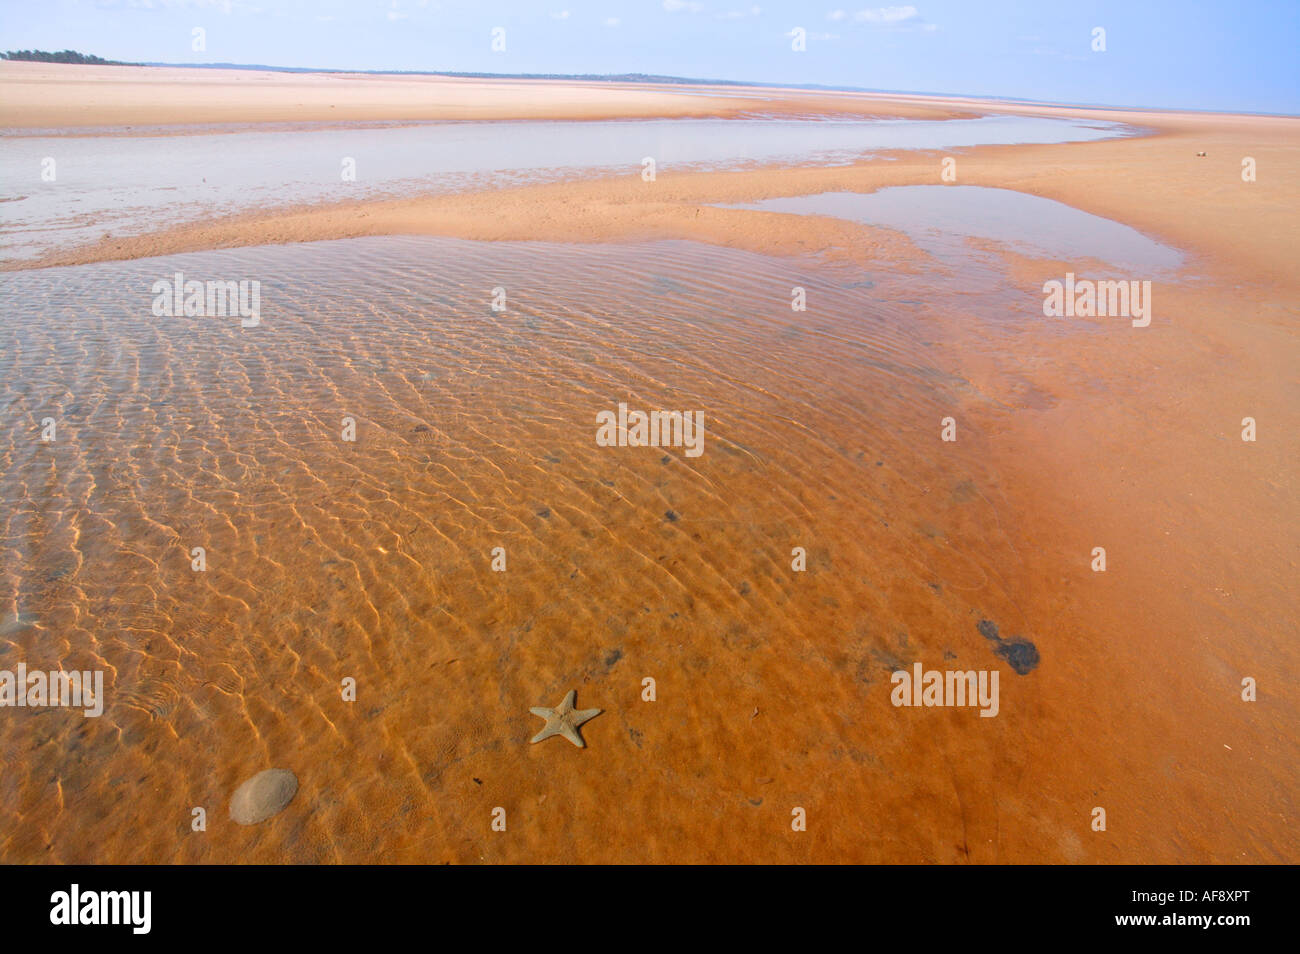 Shallow estuarine water with a star fish and a wide view over an extensive beach - Stock Image